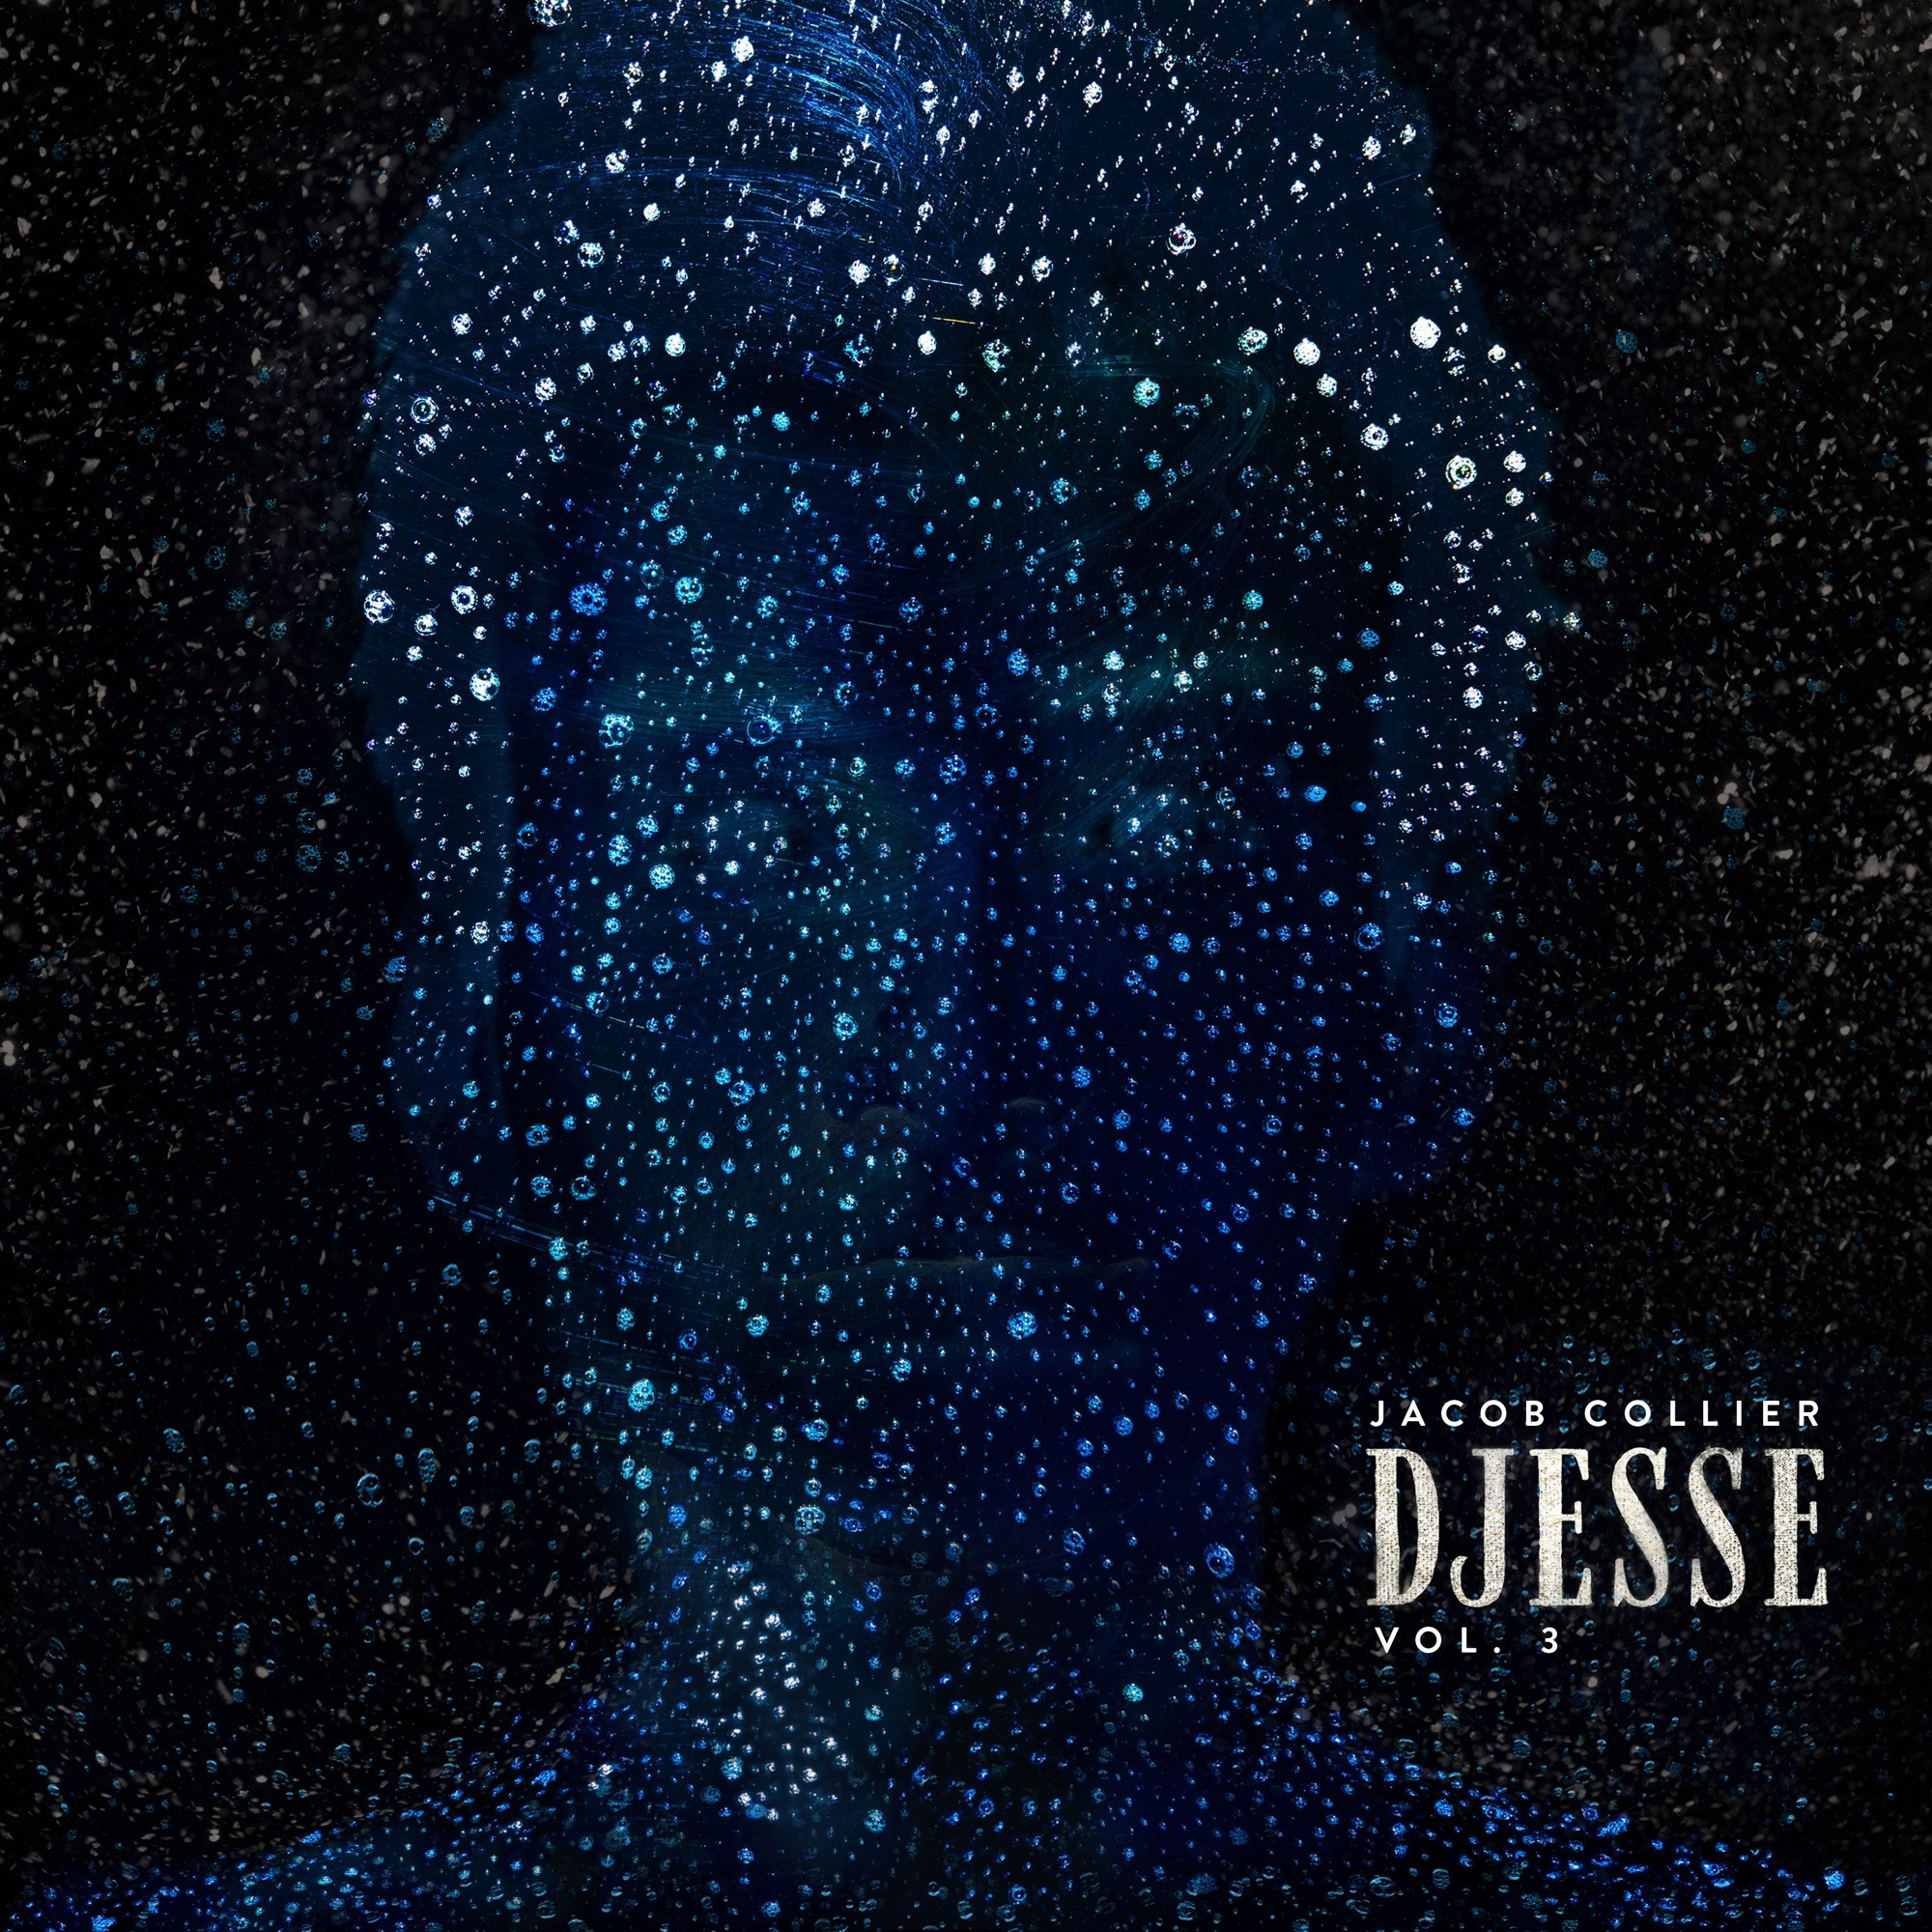 Jacob Collier - Djesse, Vol. 3